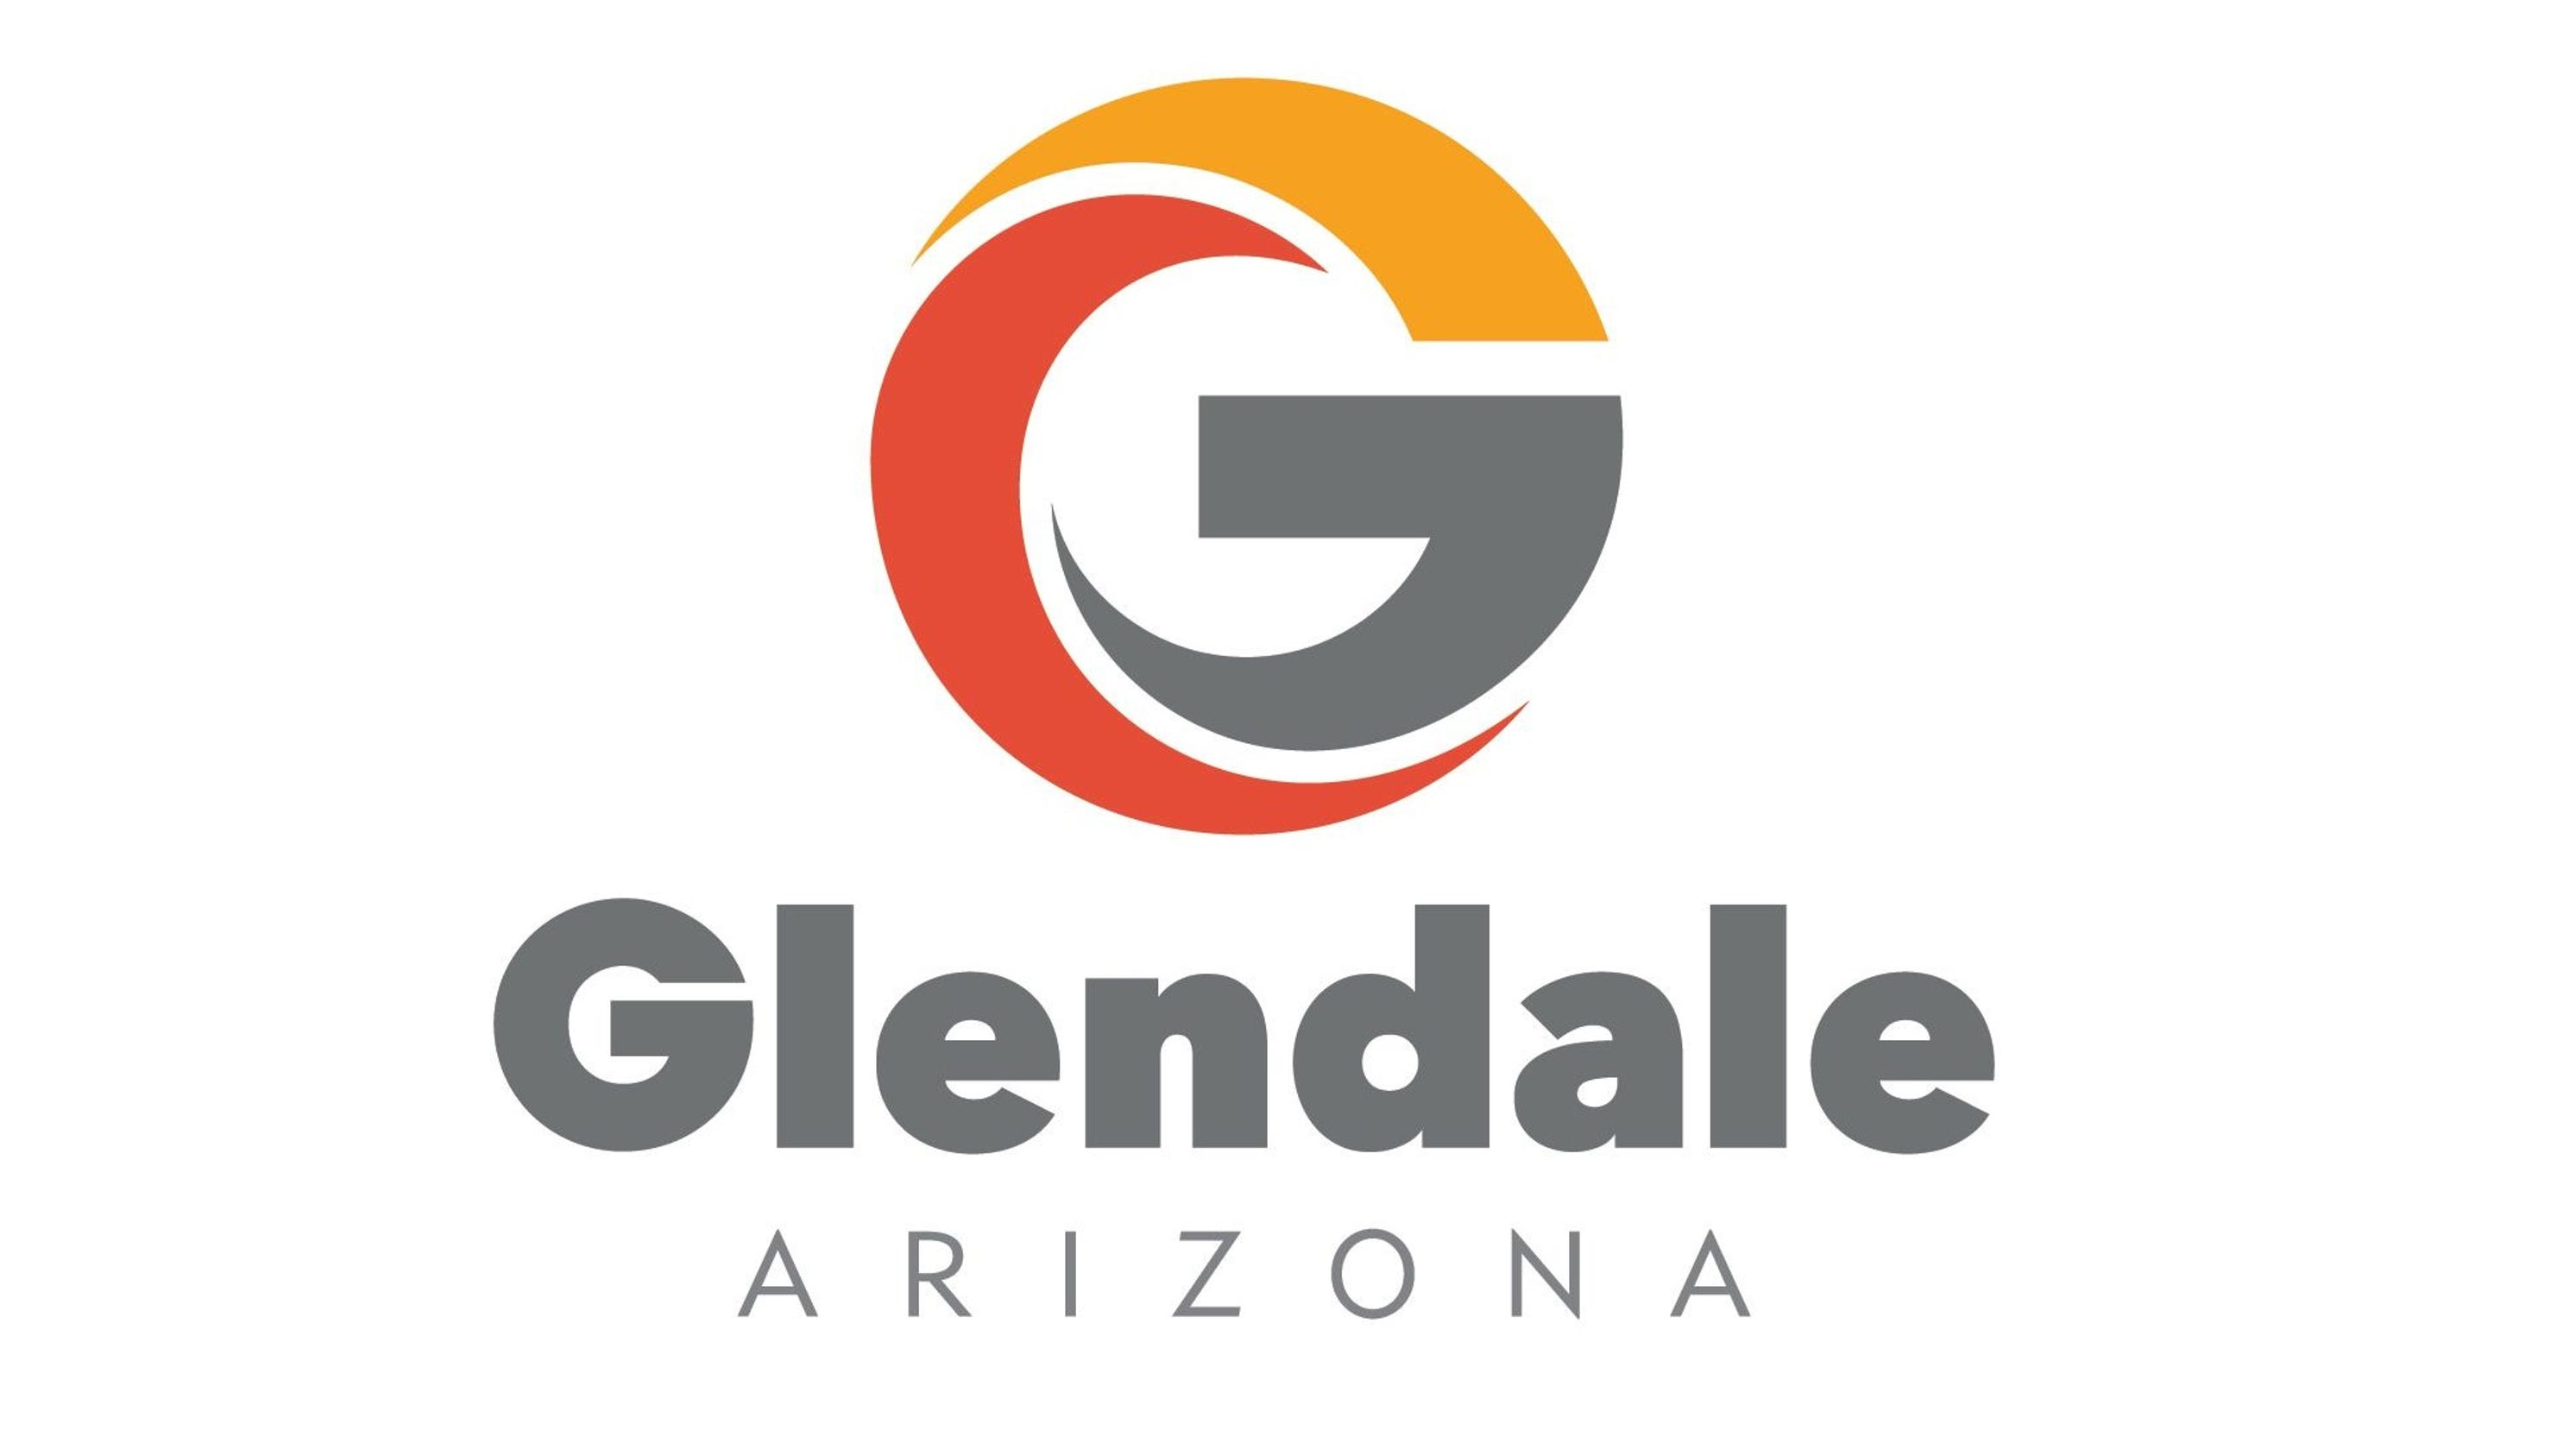 4385d114 Glendale's new city logo looks just like Google's icon, and the ...